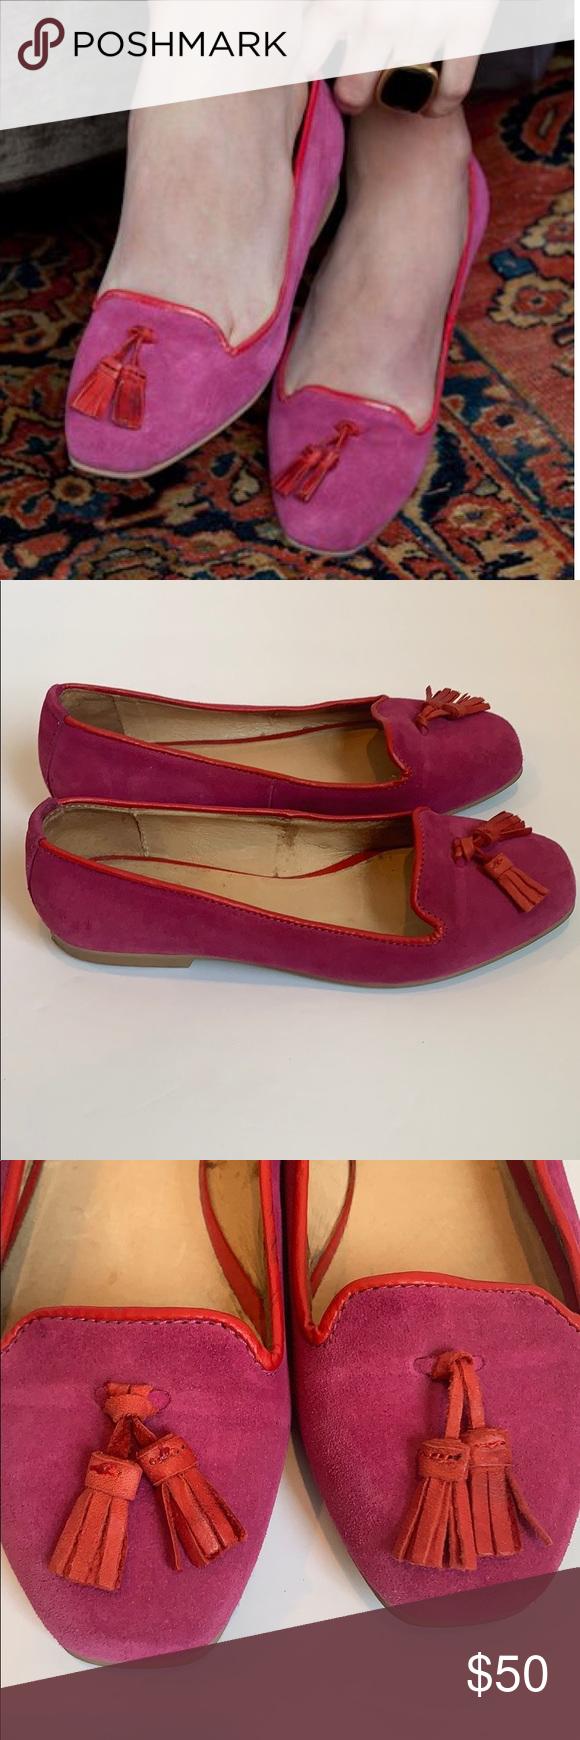 Emerson Fry Loafer Fuschia Adorable Emerson Fry loafer in fuchsia with red peeping and tassels. Great for all day wear. Markings on inside as shown. Outside of shoe is excellent condition, small mark on left back.  Size 39. Emerson Fry Shoes Flats & Loafers #emersonfry Emerson Fry Loafer Fuschia Adorable Emerson Fry loafer in fuchsia with red peeping and tassels. Great for all day wear. Markings on inside as shown. Outside of shoe is excellent condition, small mark on left back.  Size 39. Emerso #emersonfry